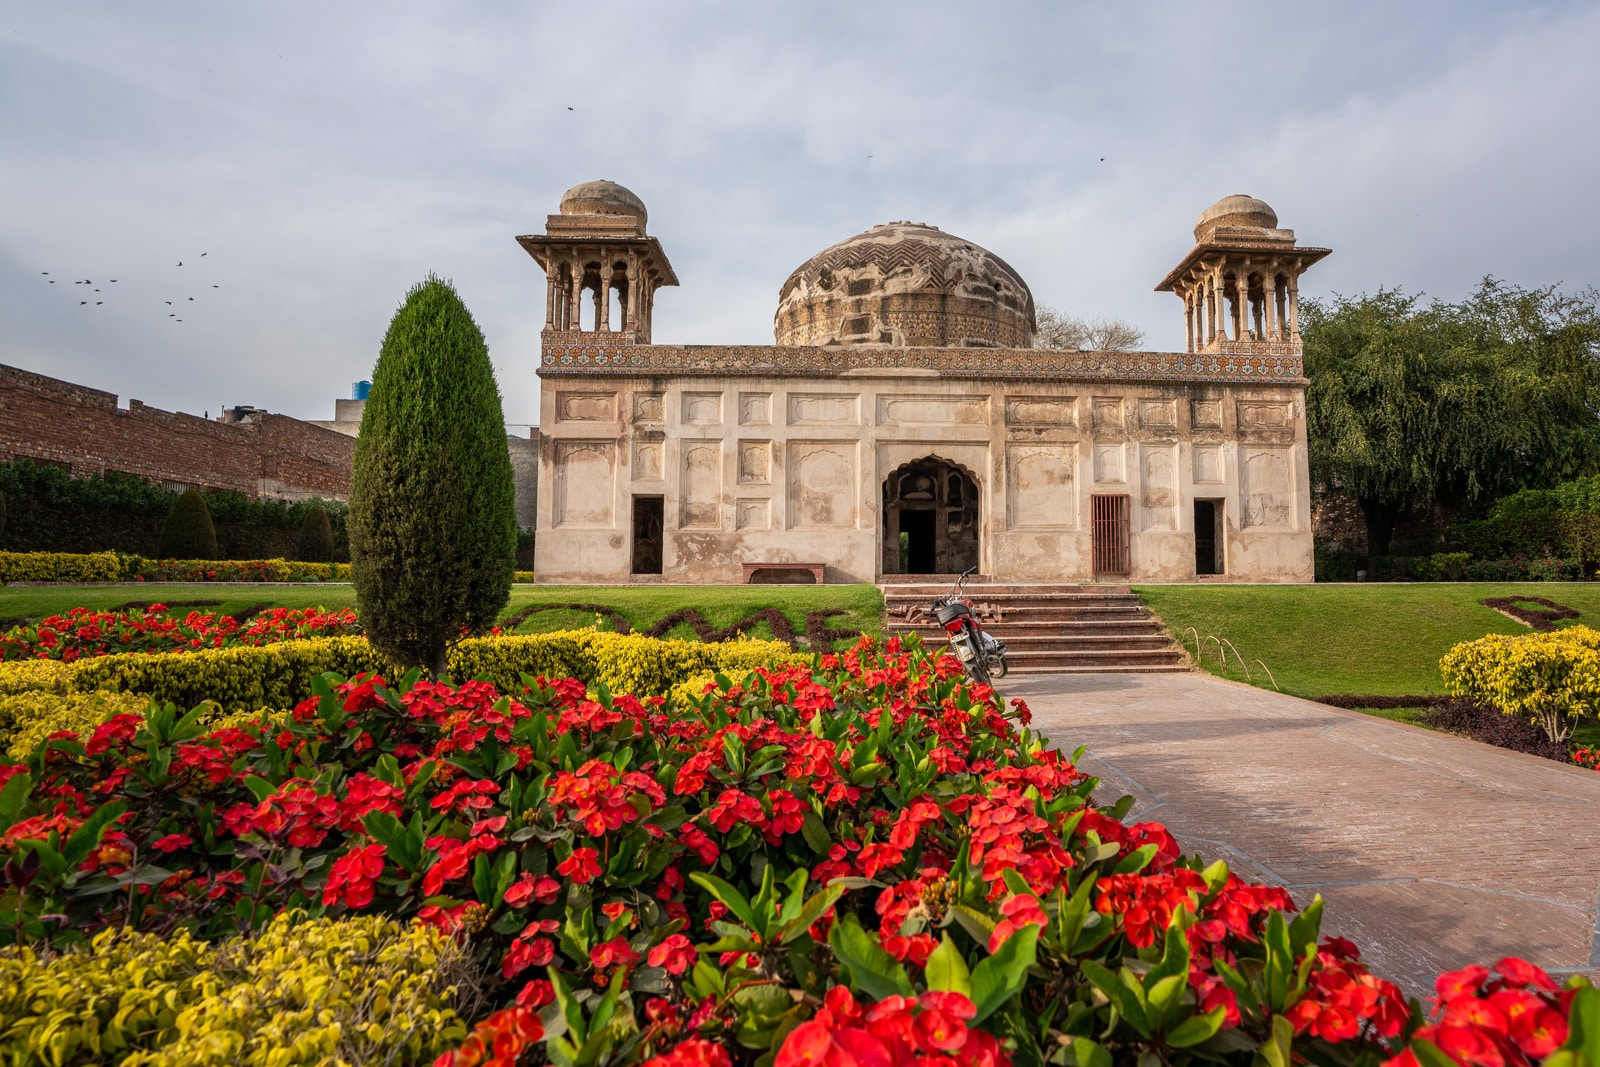 Offbeat things to do in Lahore - Mughal gardens around the tomb of Dai Anga in Lahore, Pakistan